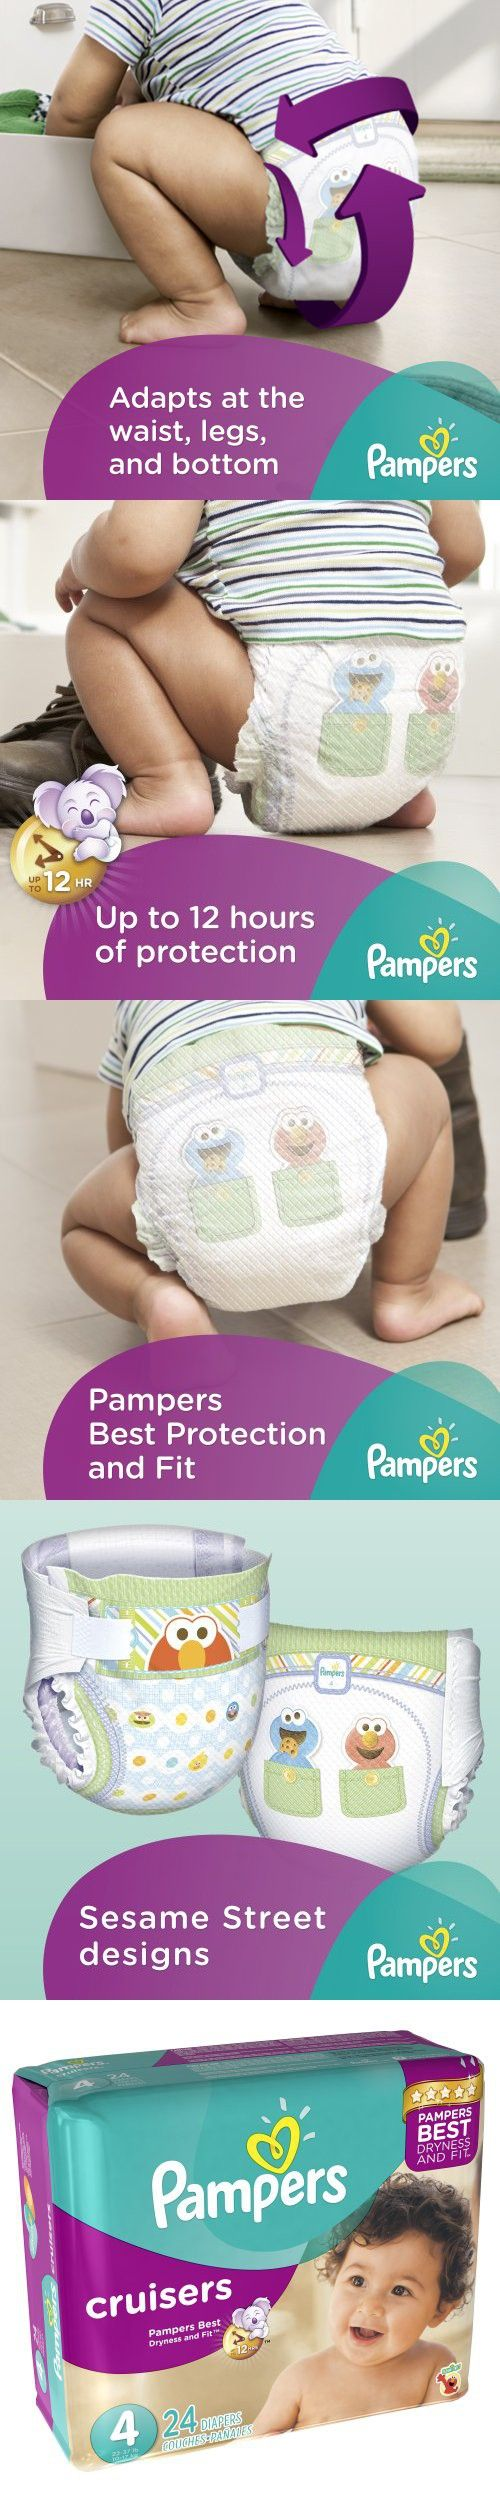 Pampers Cruisers Diapers Size 4 Jumbo Pack, 24 ct